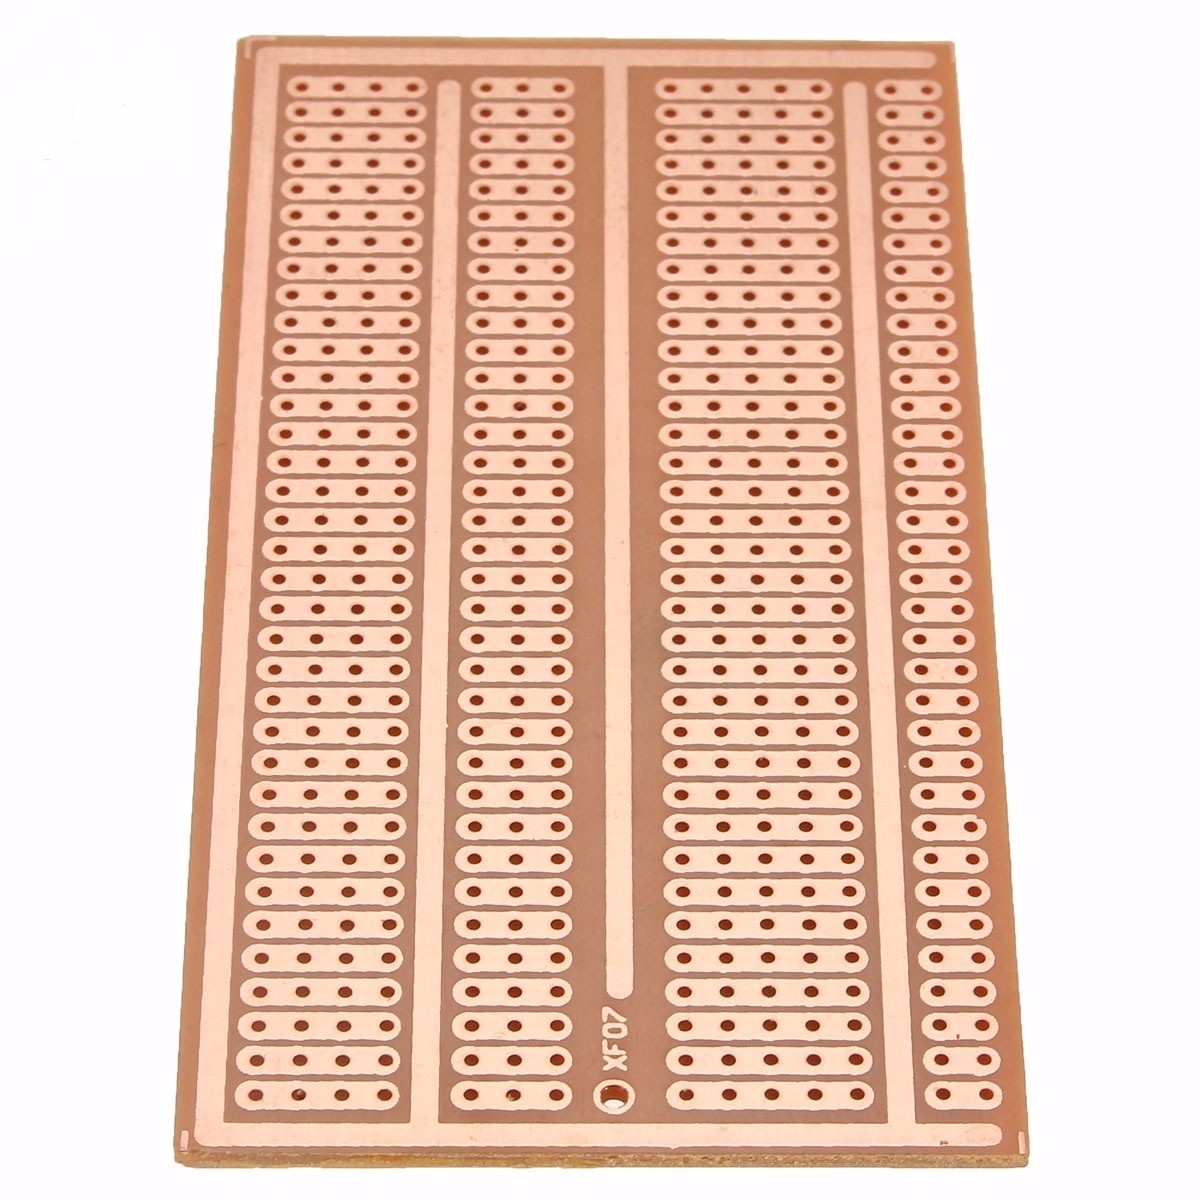 10Pcs 5x10cm DIY Single Side Copper Prototype Paper PCB Universal Experiment Circuit Board Breadboard 2-3-5 joint hole